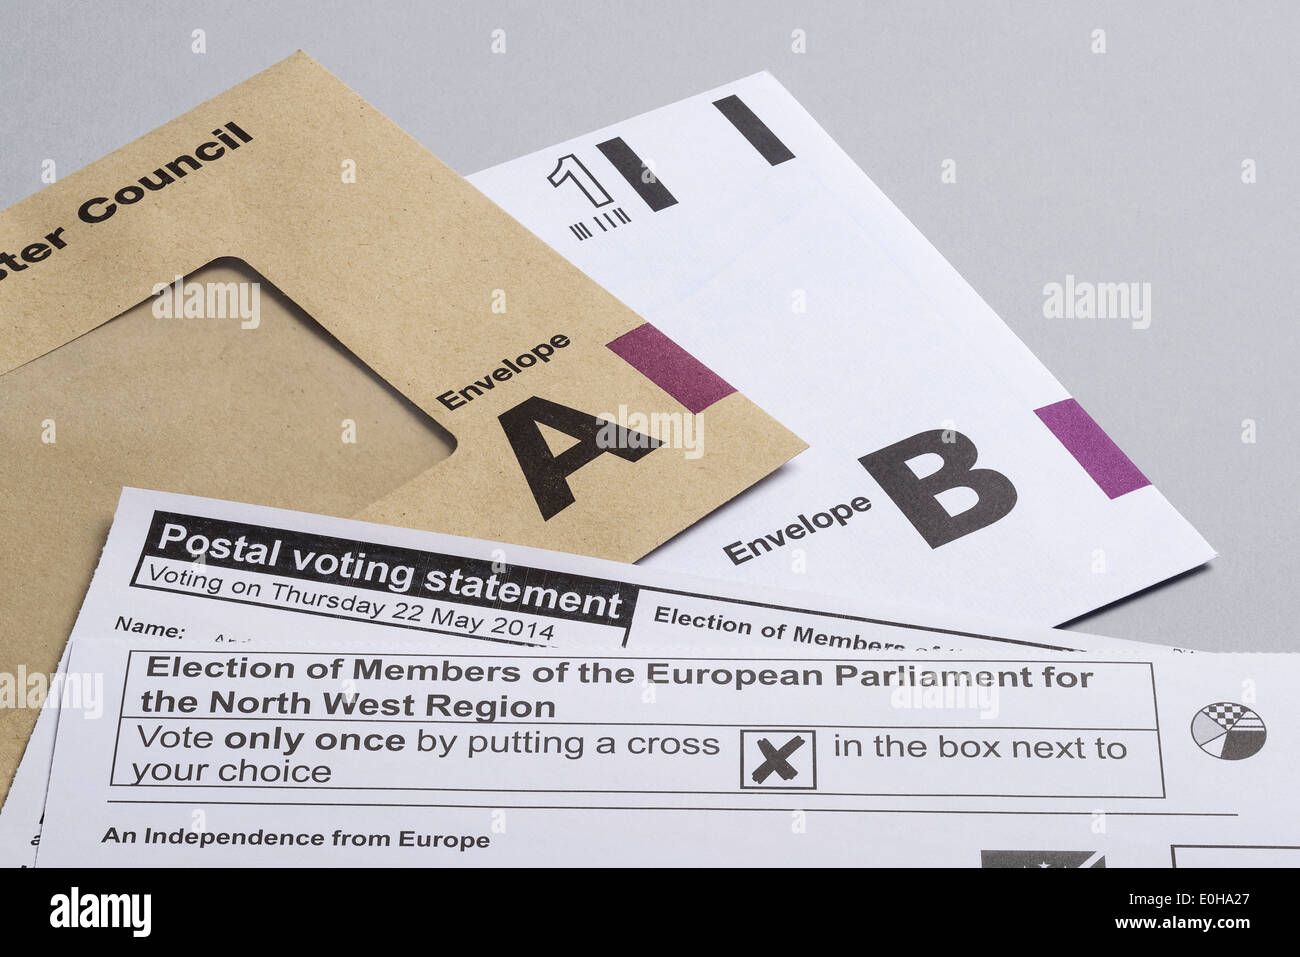 Postal Voting for the European Elections in May 2014 - Stock Image